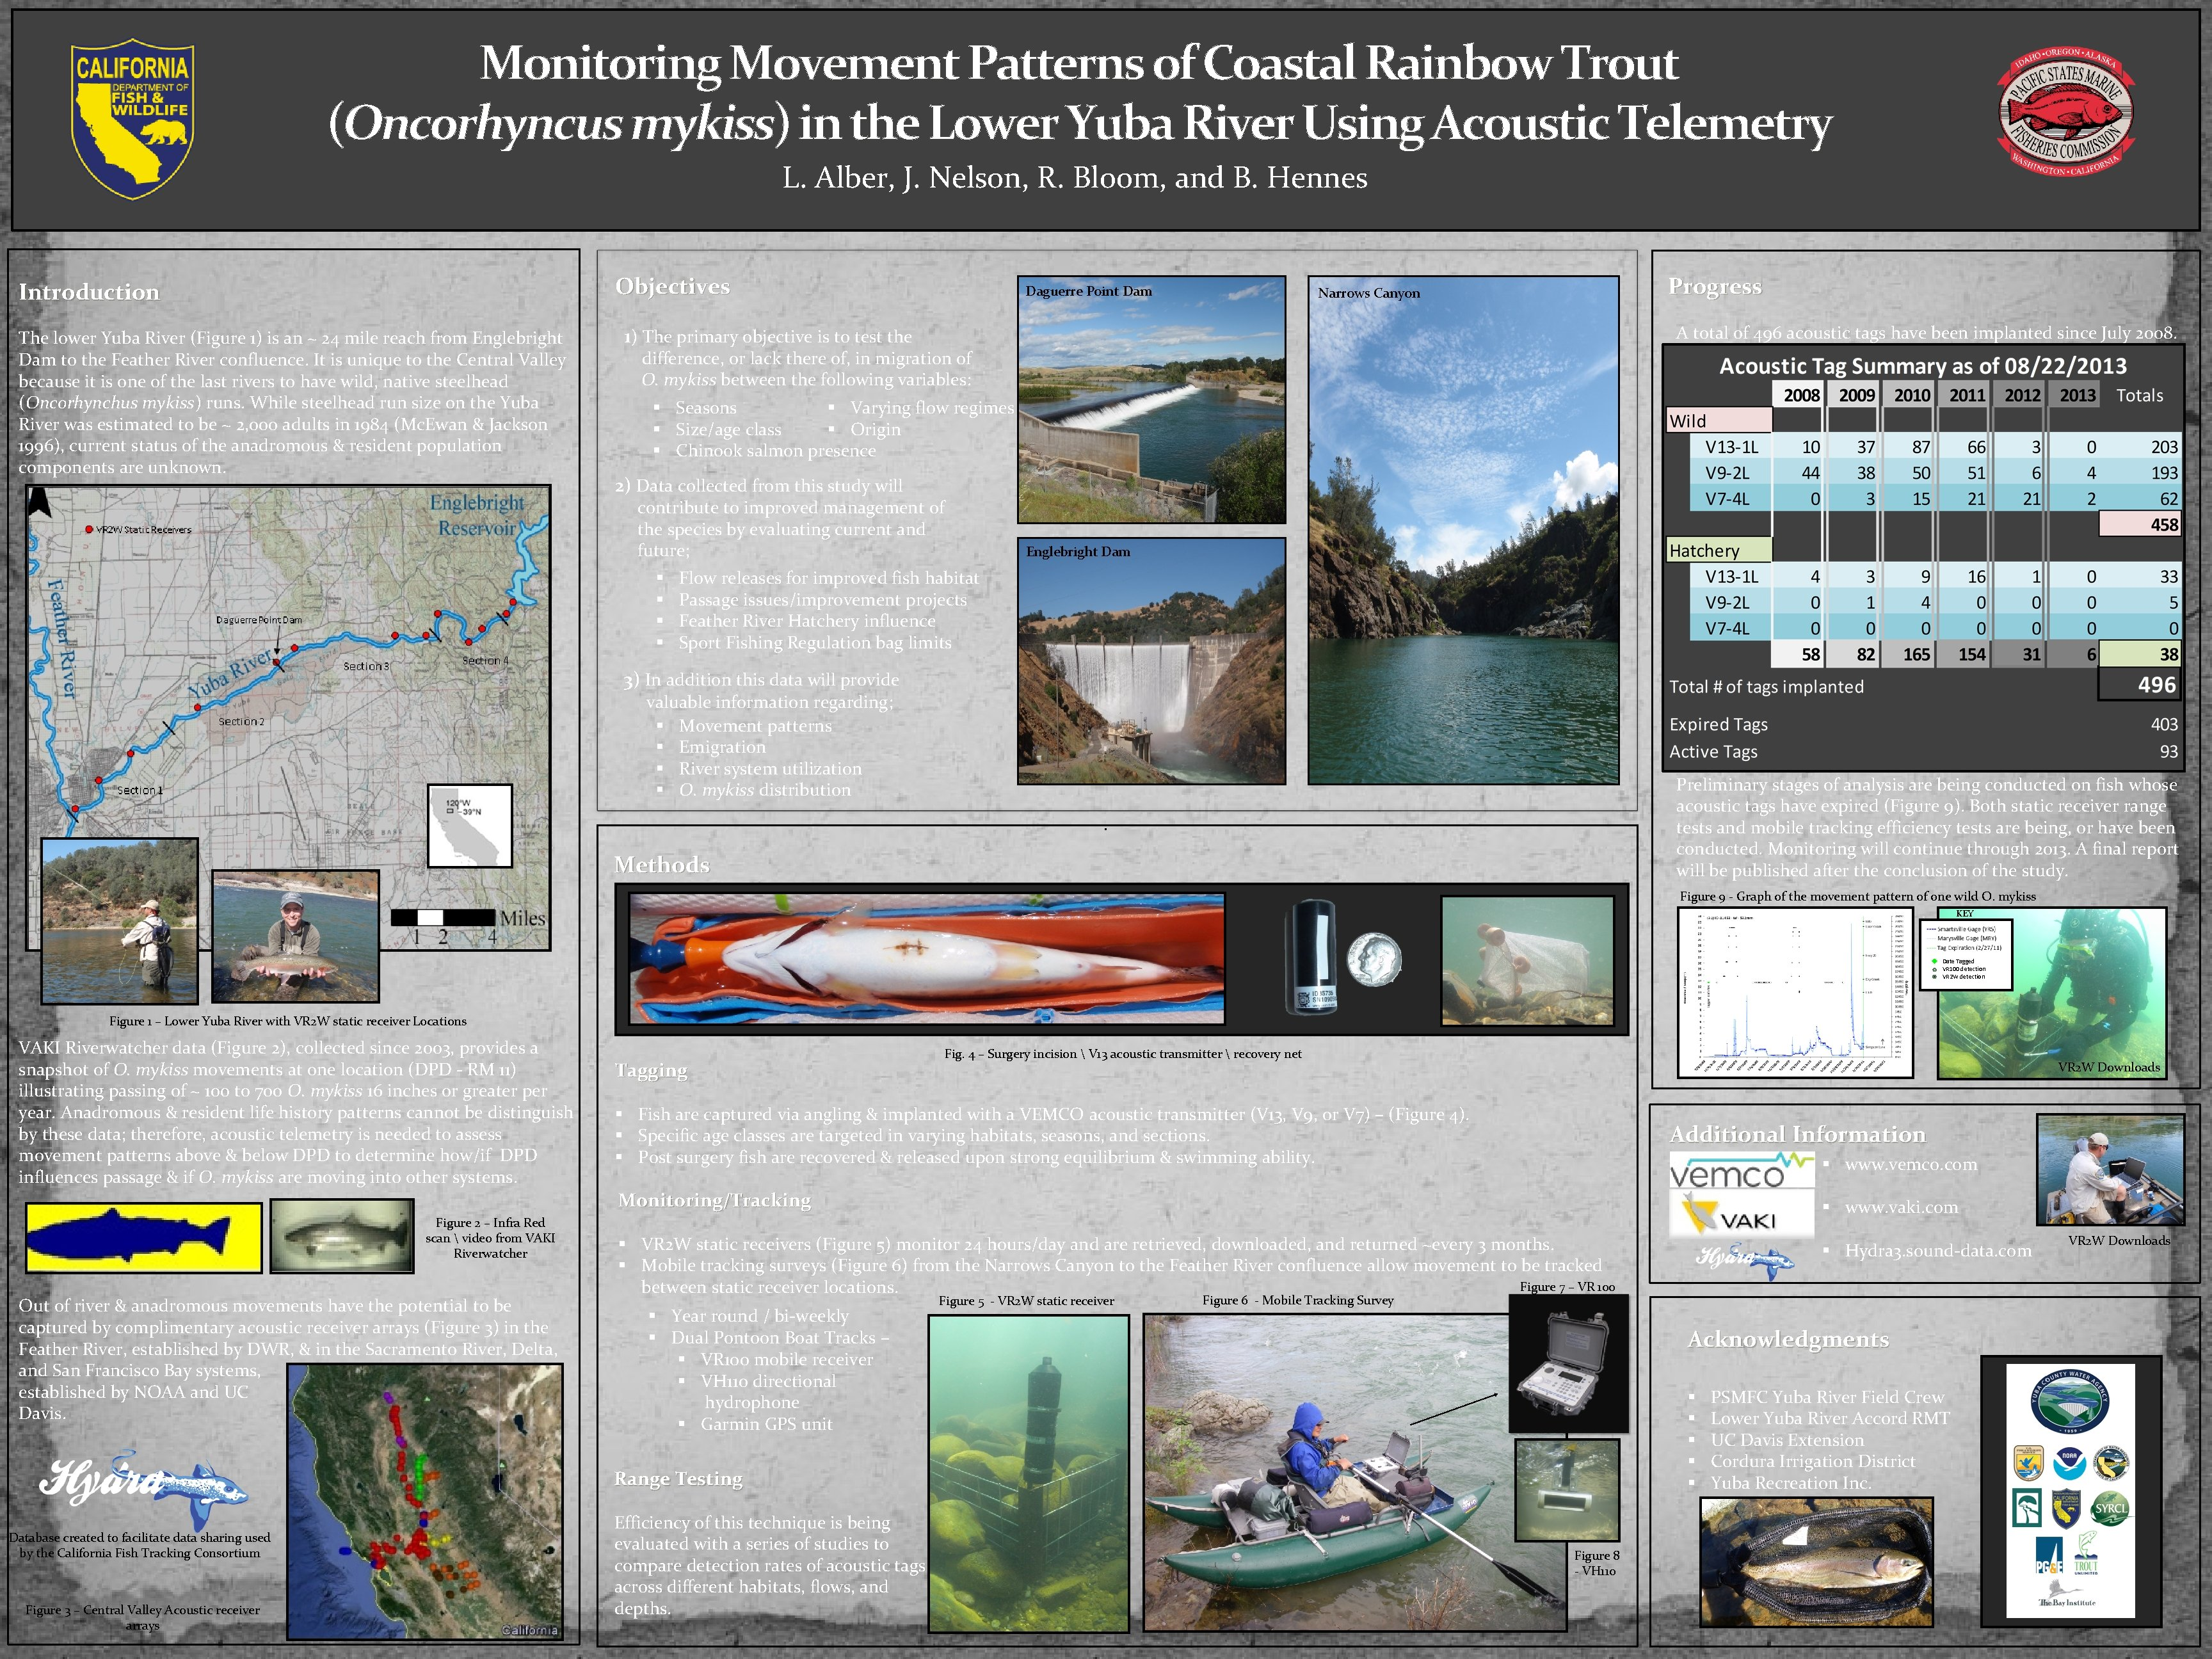 Monitoring Movement Patterns of Coastal Rainbow Trout (Oncorhyncus mykiss) in the Lower Yuba River